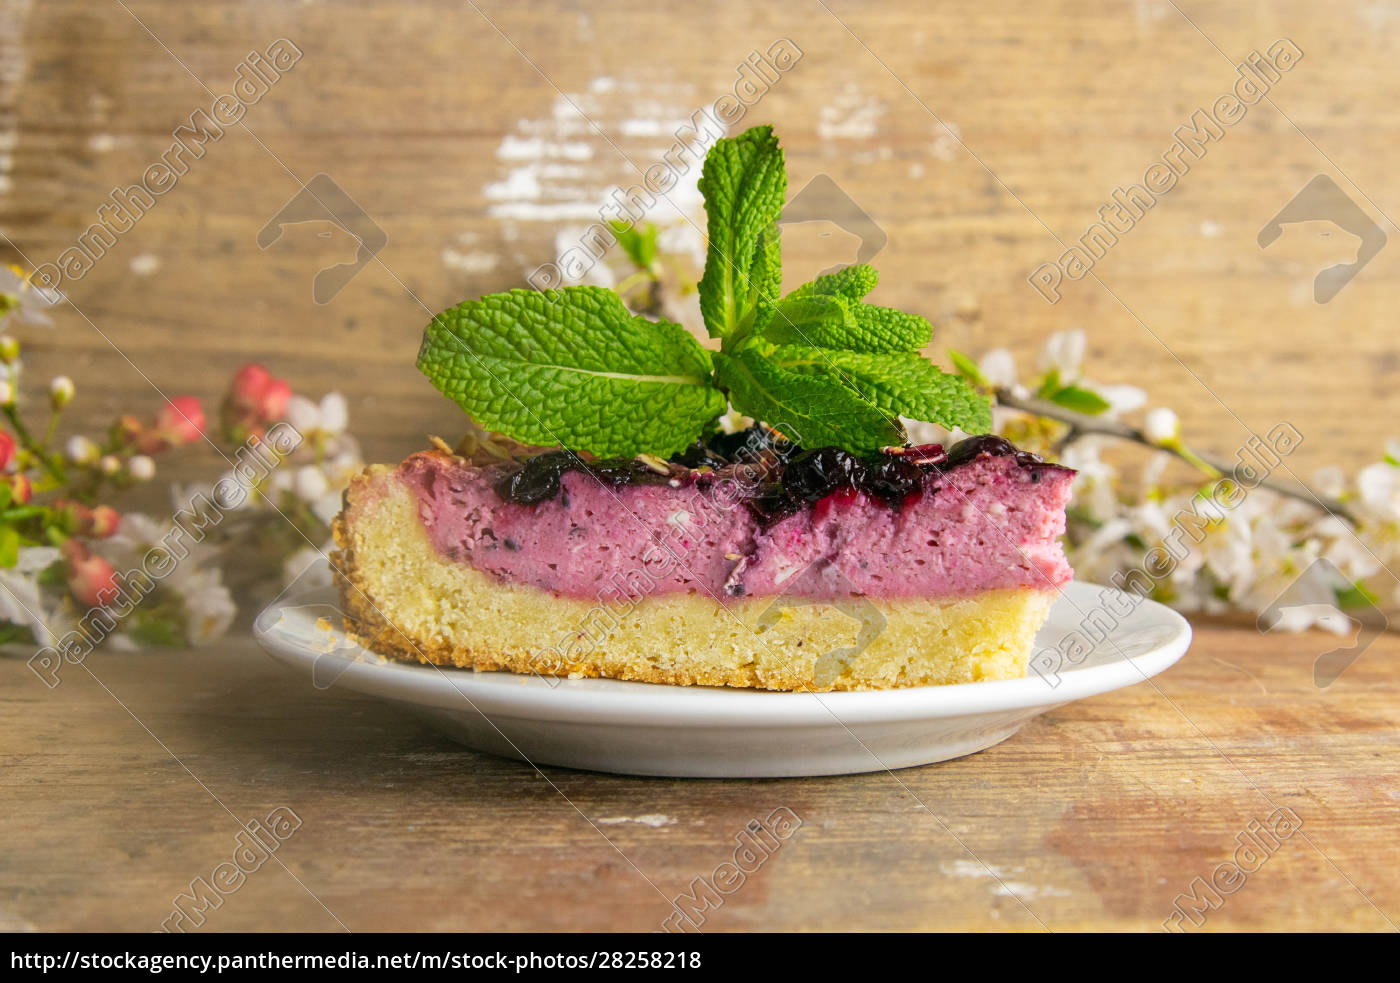 slices, of, blueberry, mousse, cake, with - 28258218